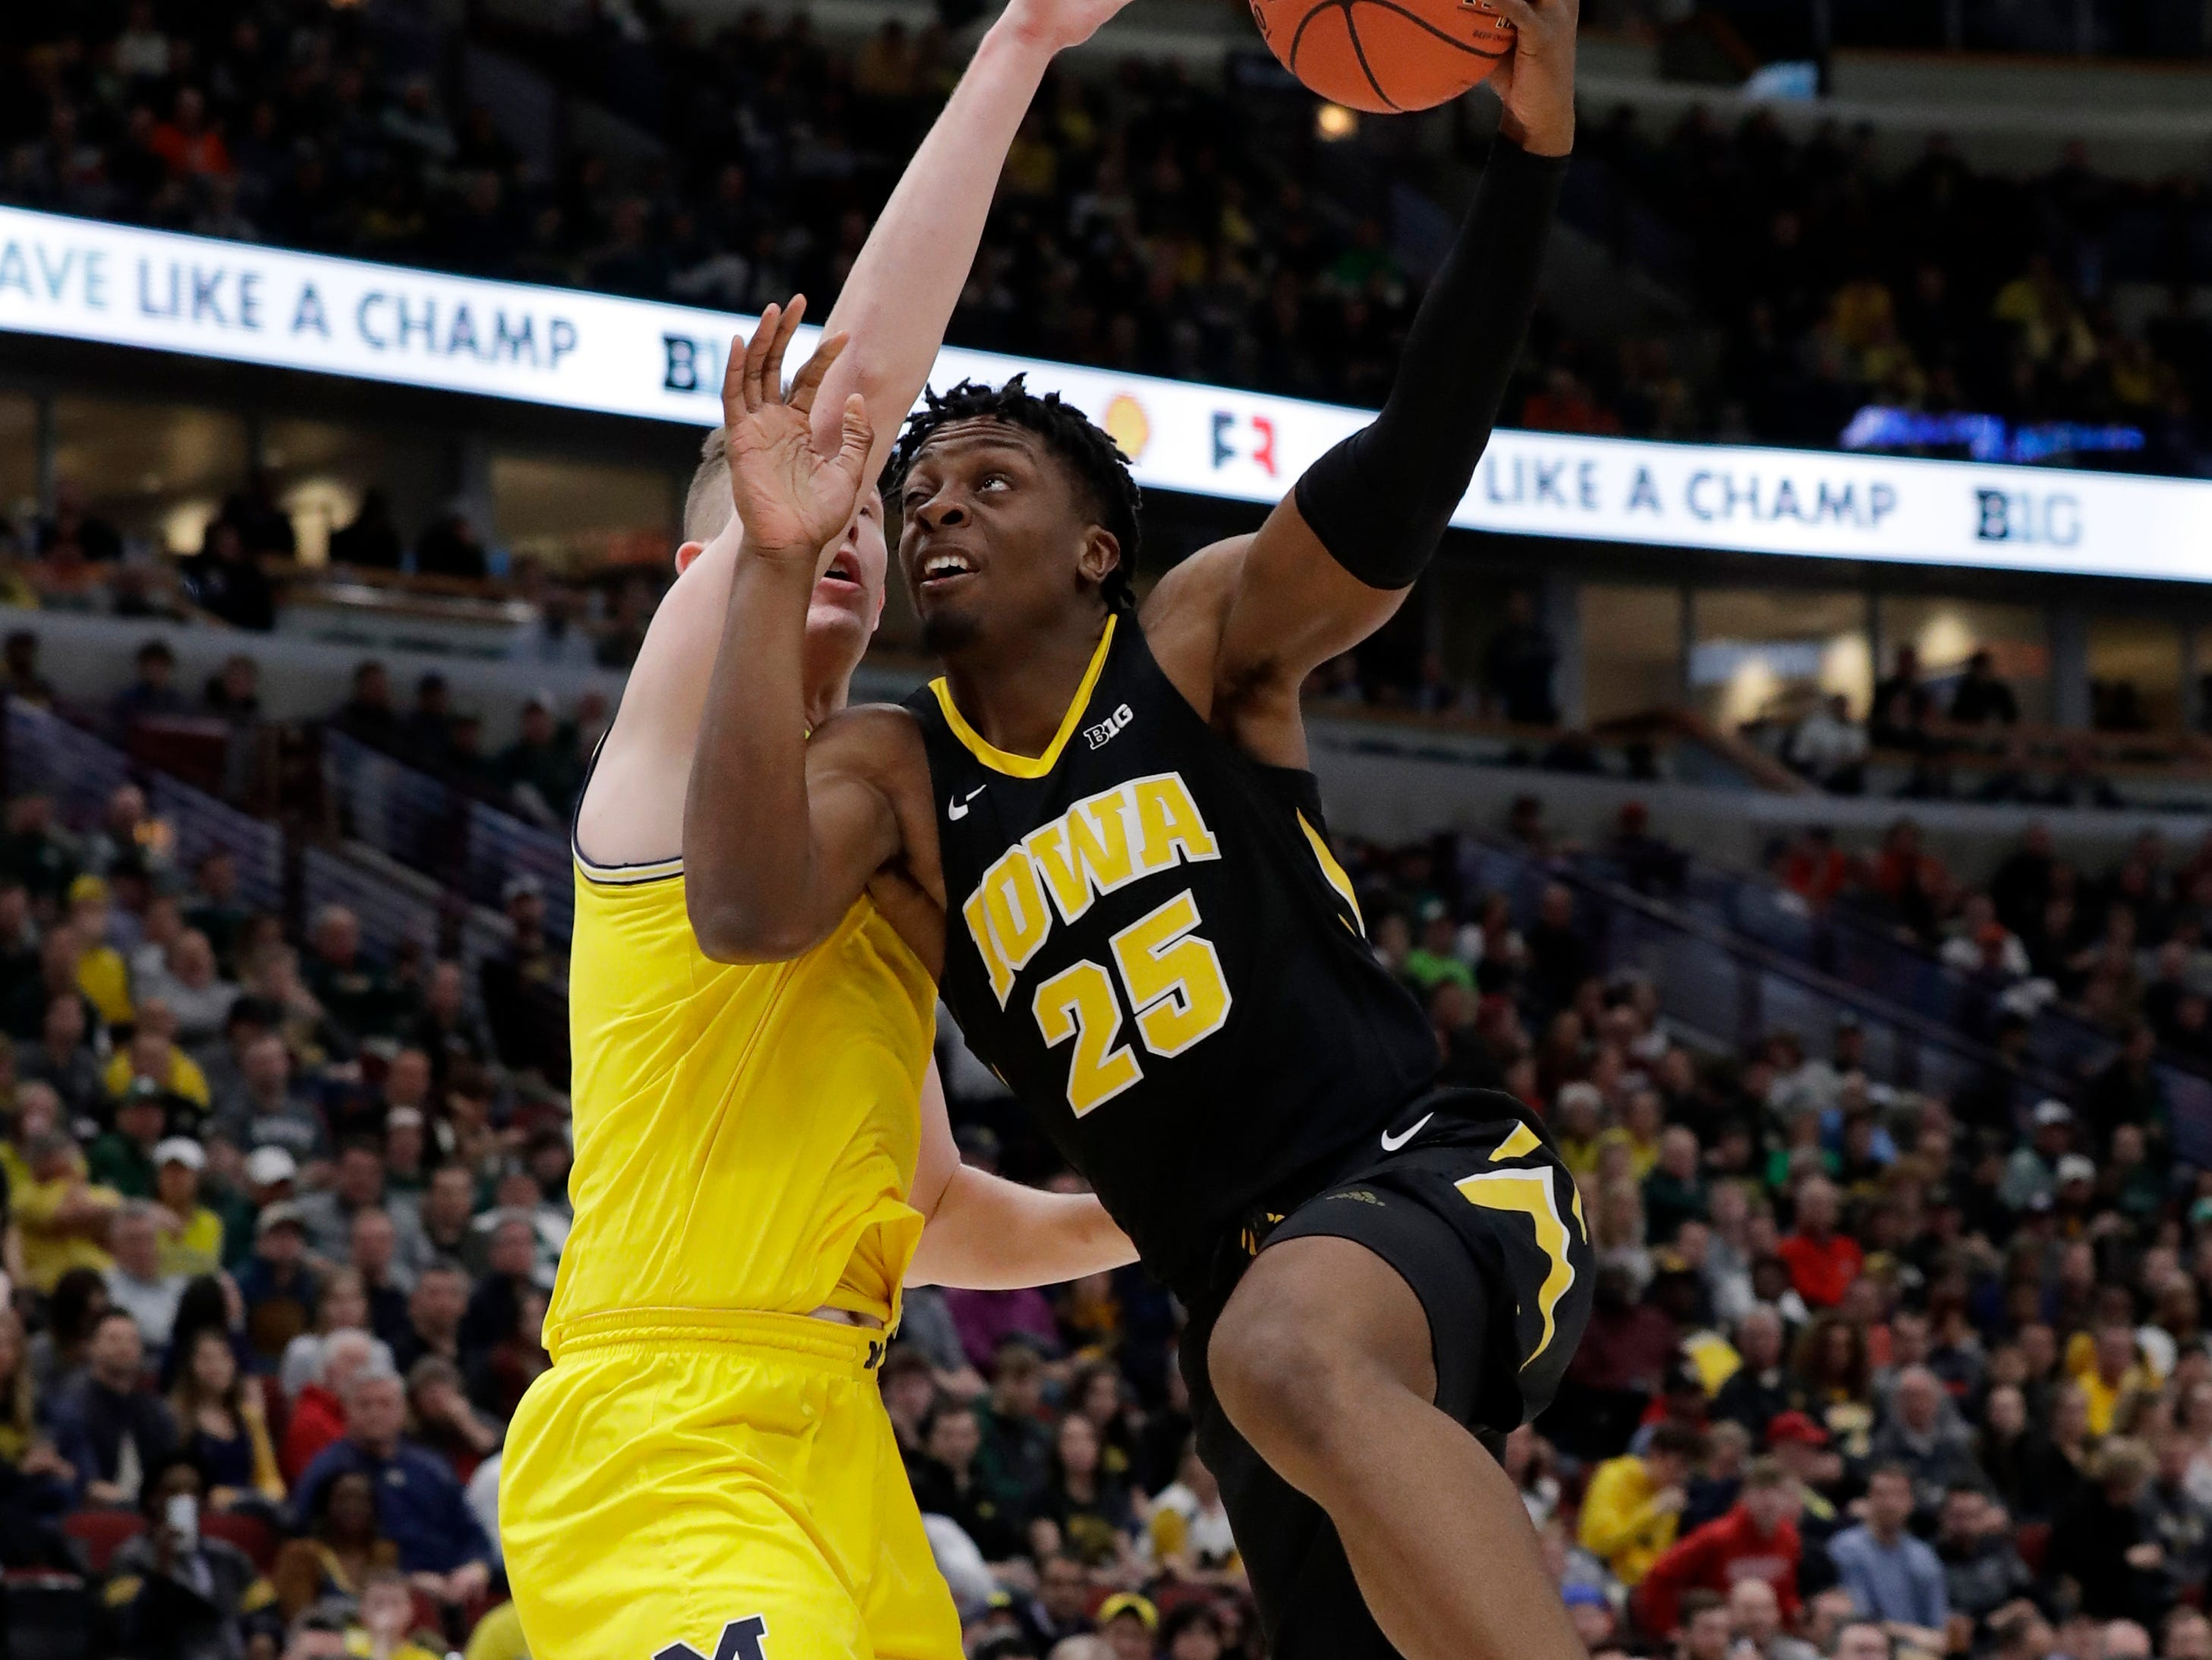 Iowa's Tyler Cook (25) goes up for a basket against Michigan's Jon Teske during the first half of an NCAA college basketball game in the quarterfinals of the Big Ten Conference tournament, Friday, March 15, 2019, in Chicago. (AP Photo/Nam Y. Huh)